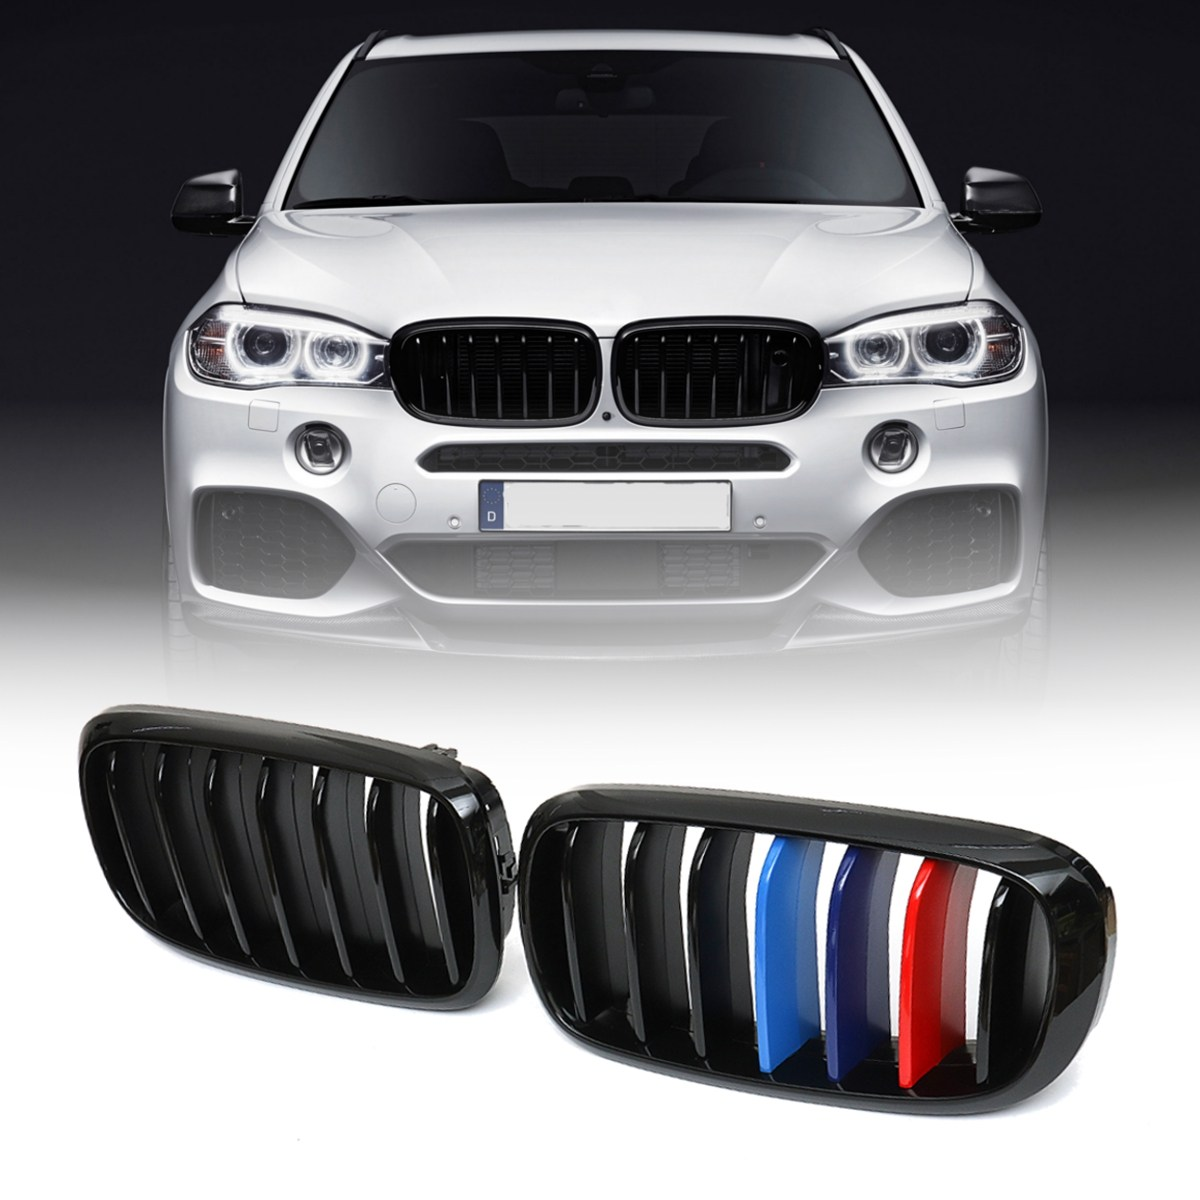 Pair Gloss Black M-Color Front Kidney Grille Grill For BMW X5 F15 X6 F16 X5M F85 X6M F86 2014 2015 2016 2017 цена 2017